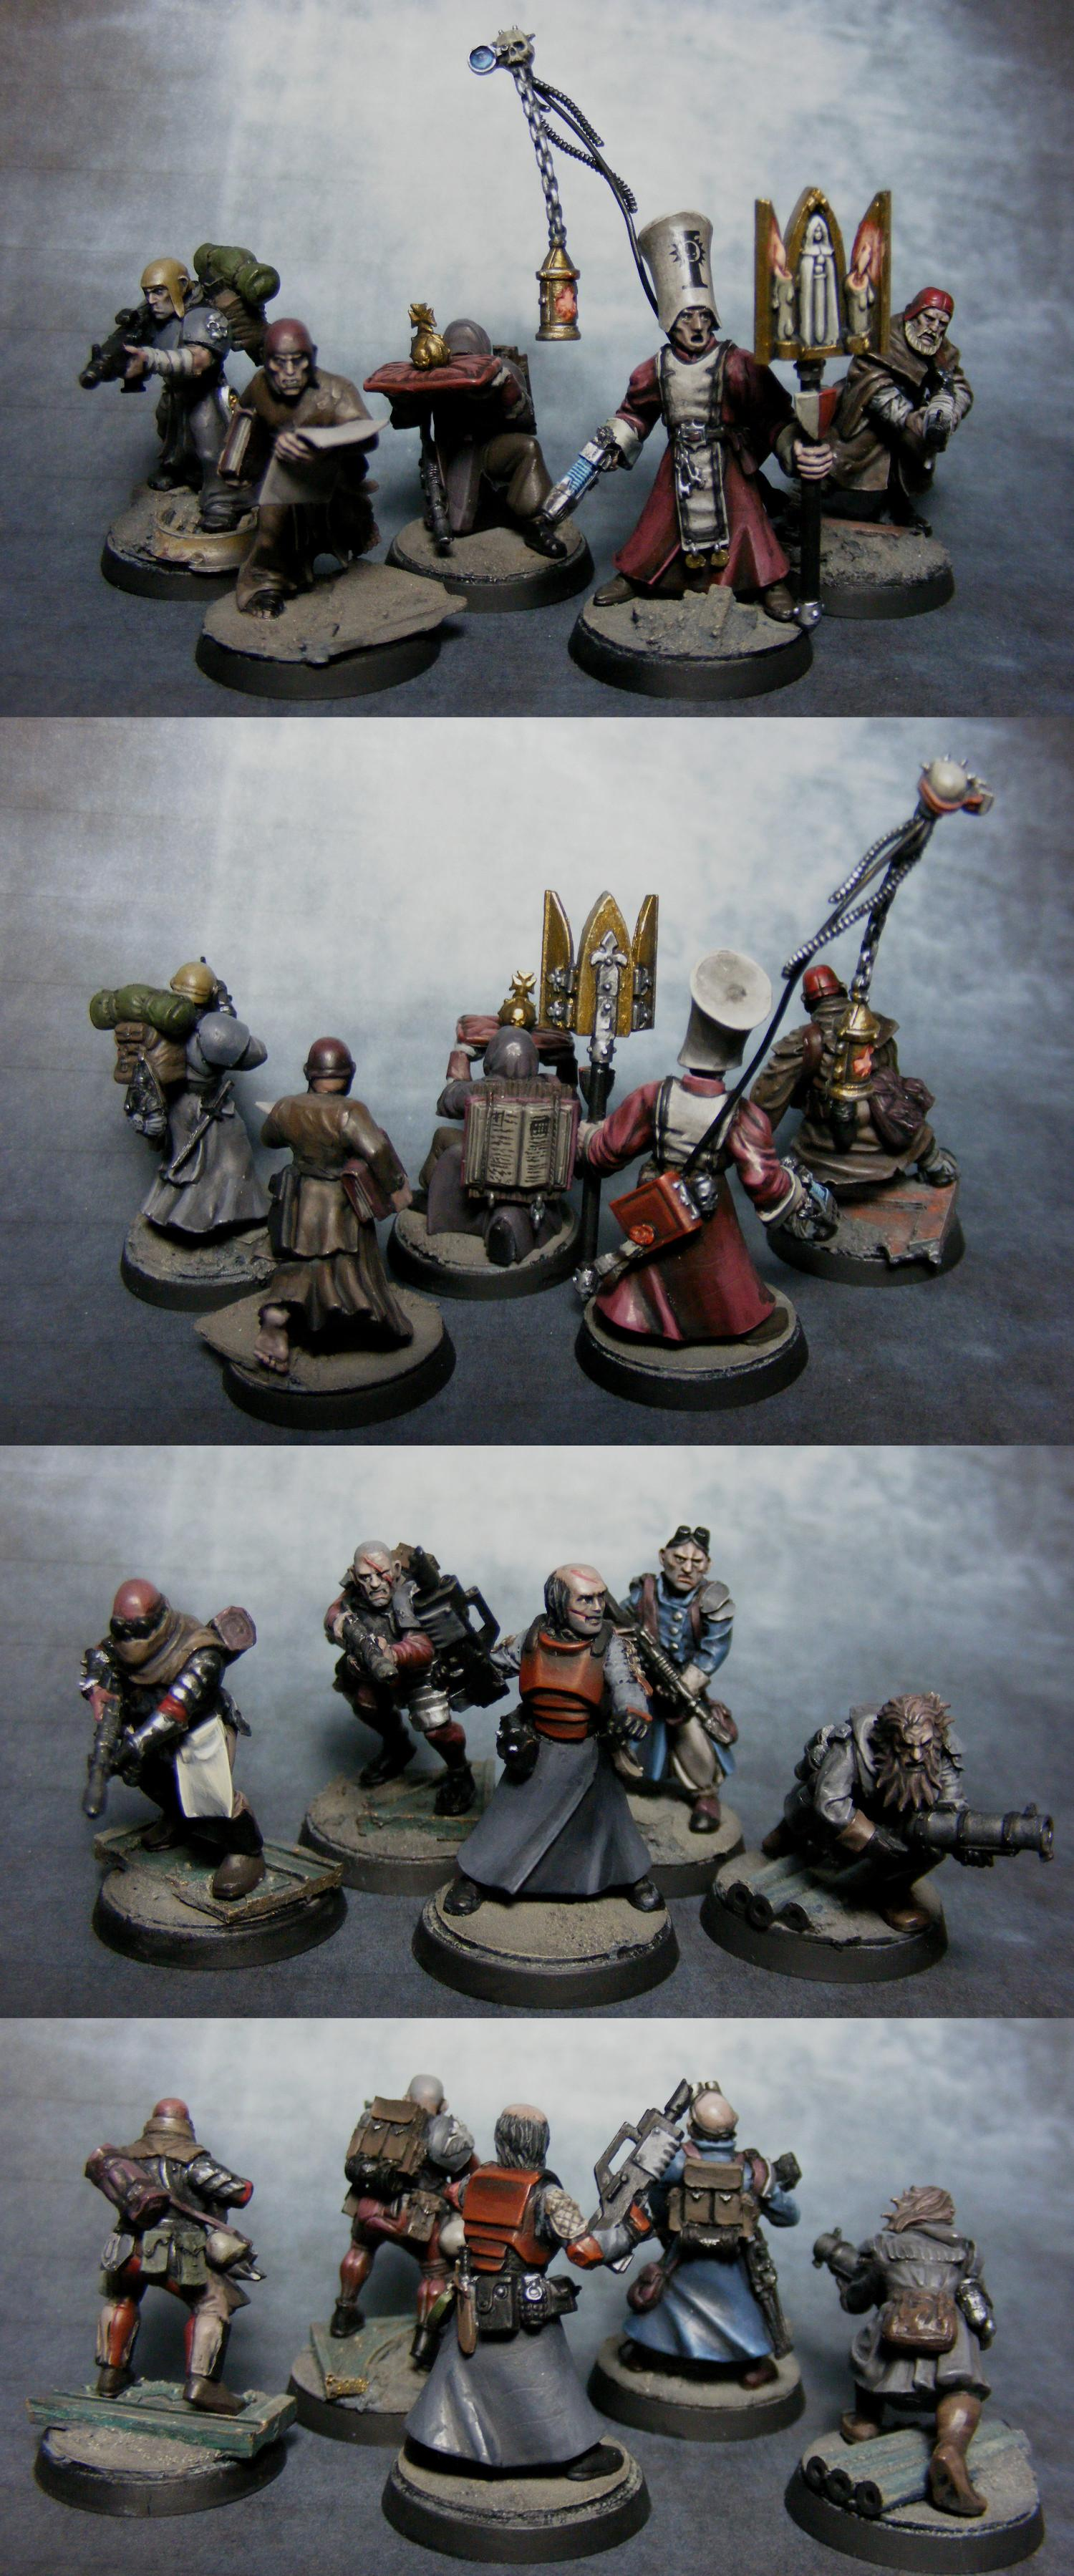 Conversion, Empire, Henchmen, Imperial Guard, Inquisition, Milita, Warhammer 40,000